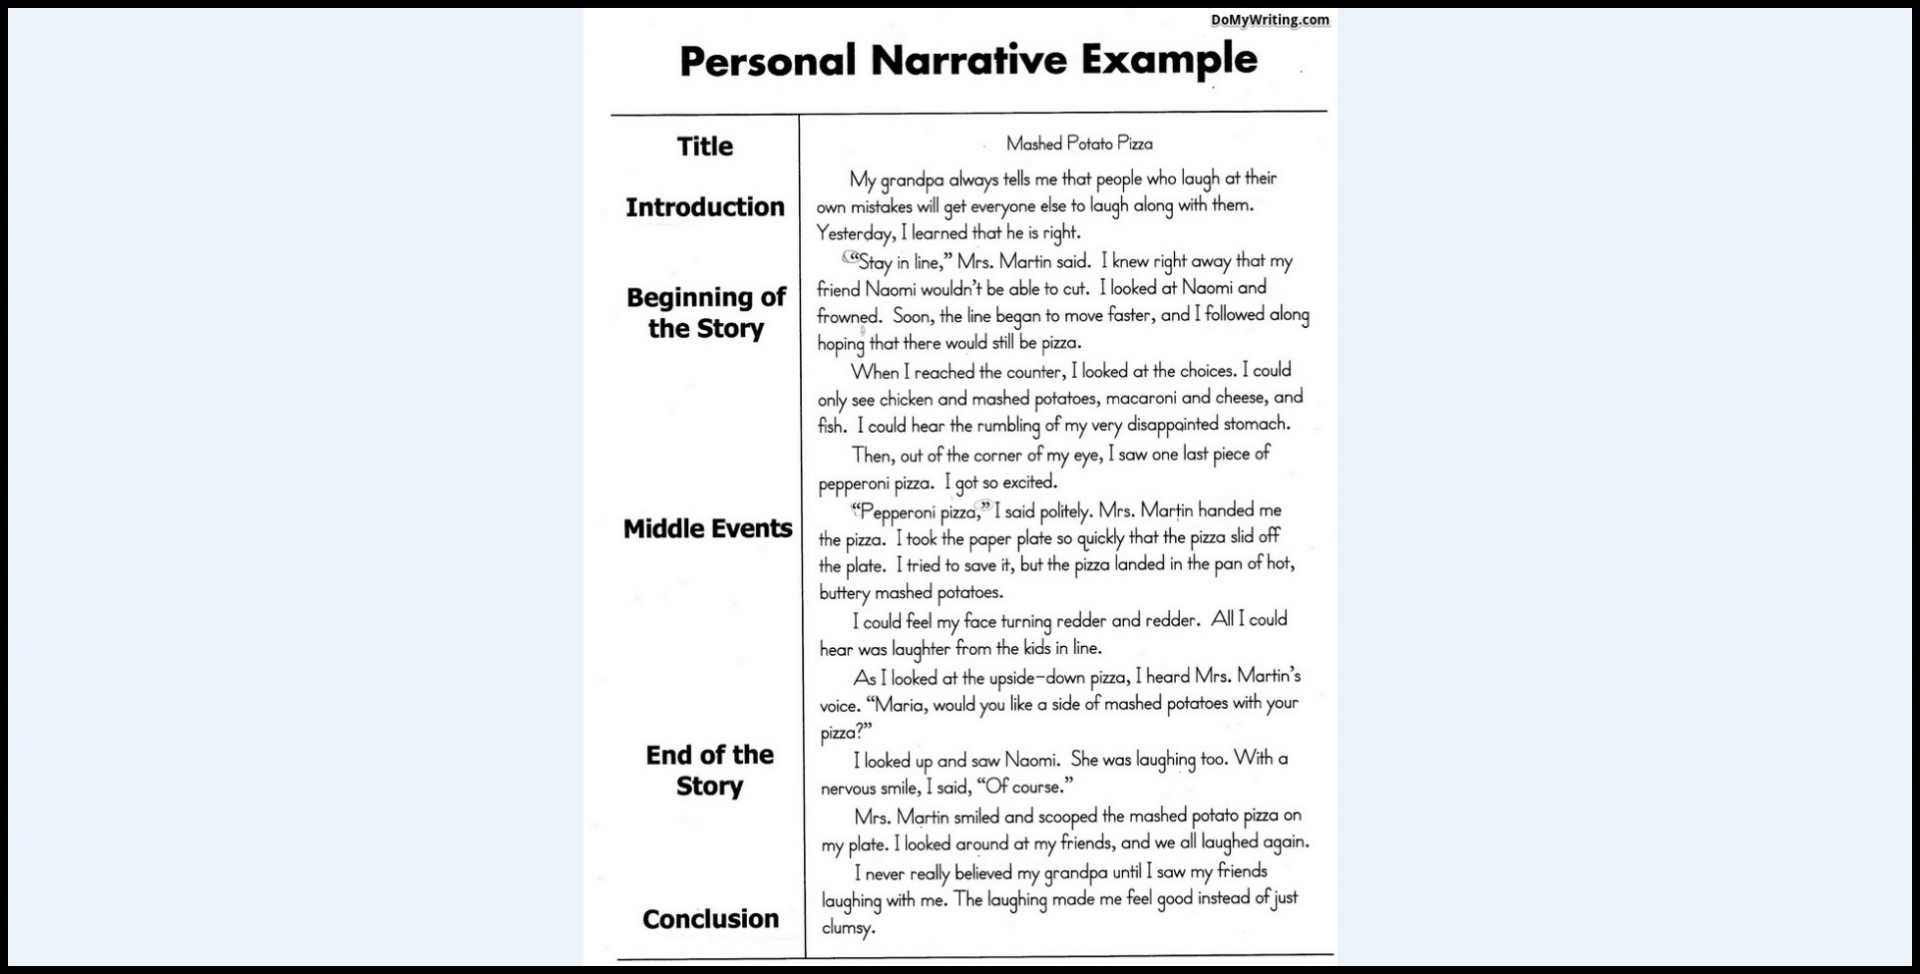 007 Narrative Essay Breathtaking Example Examples For High School 5th Grade 12 Pdf 1920